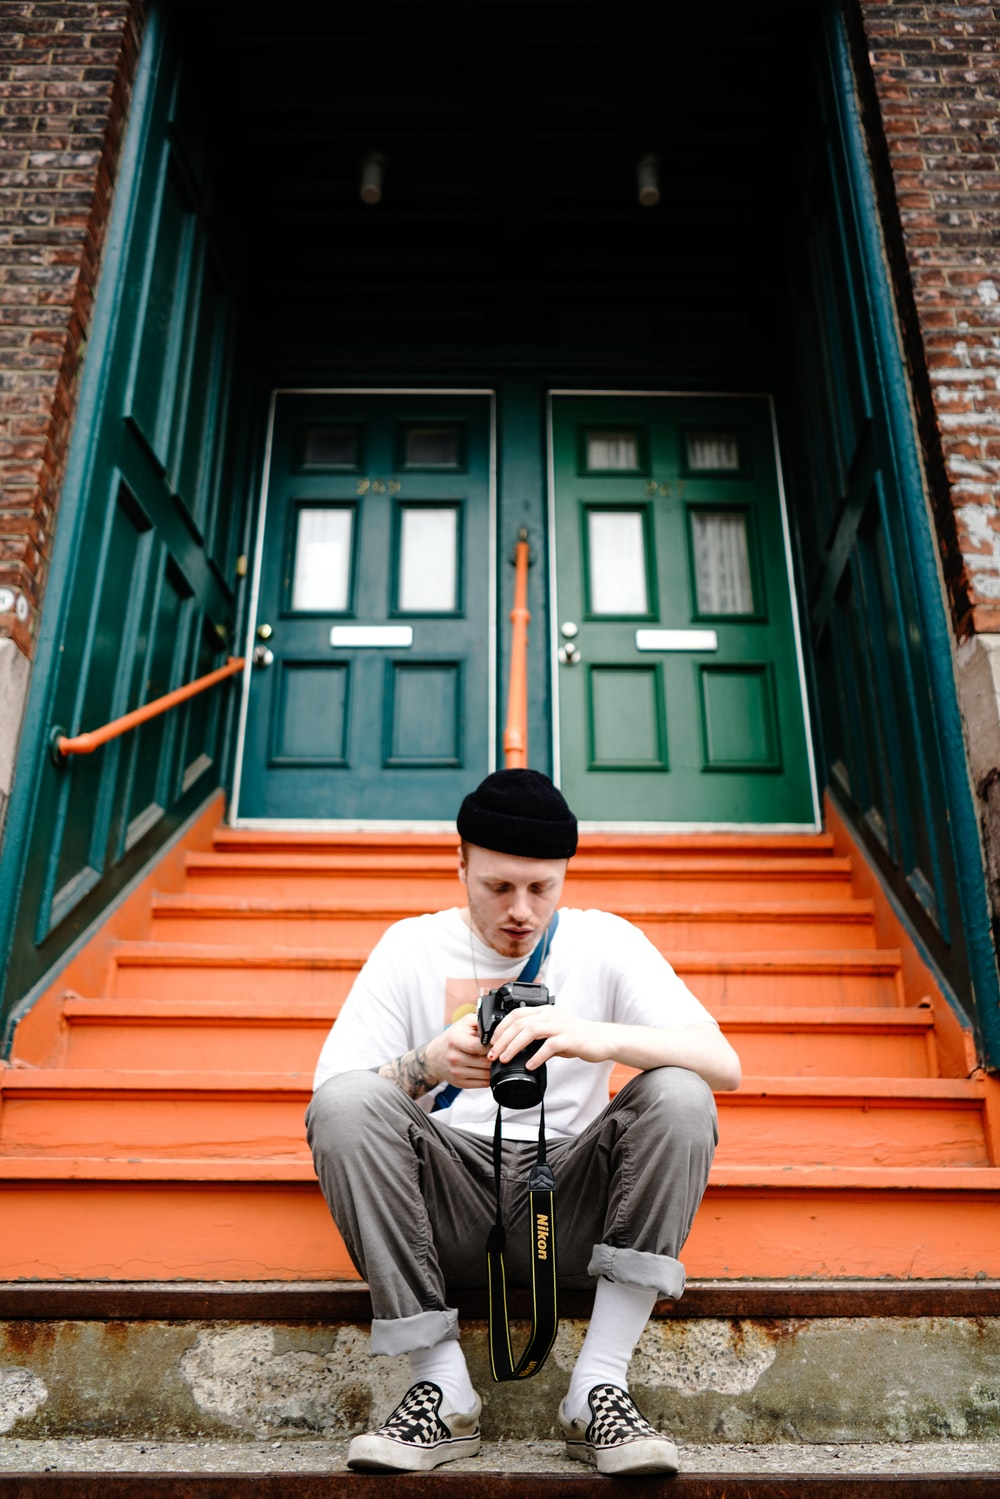 man seating in front of stair while holding DSLR camera